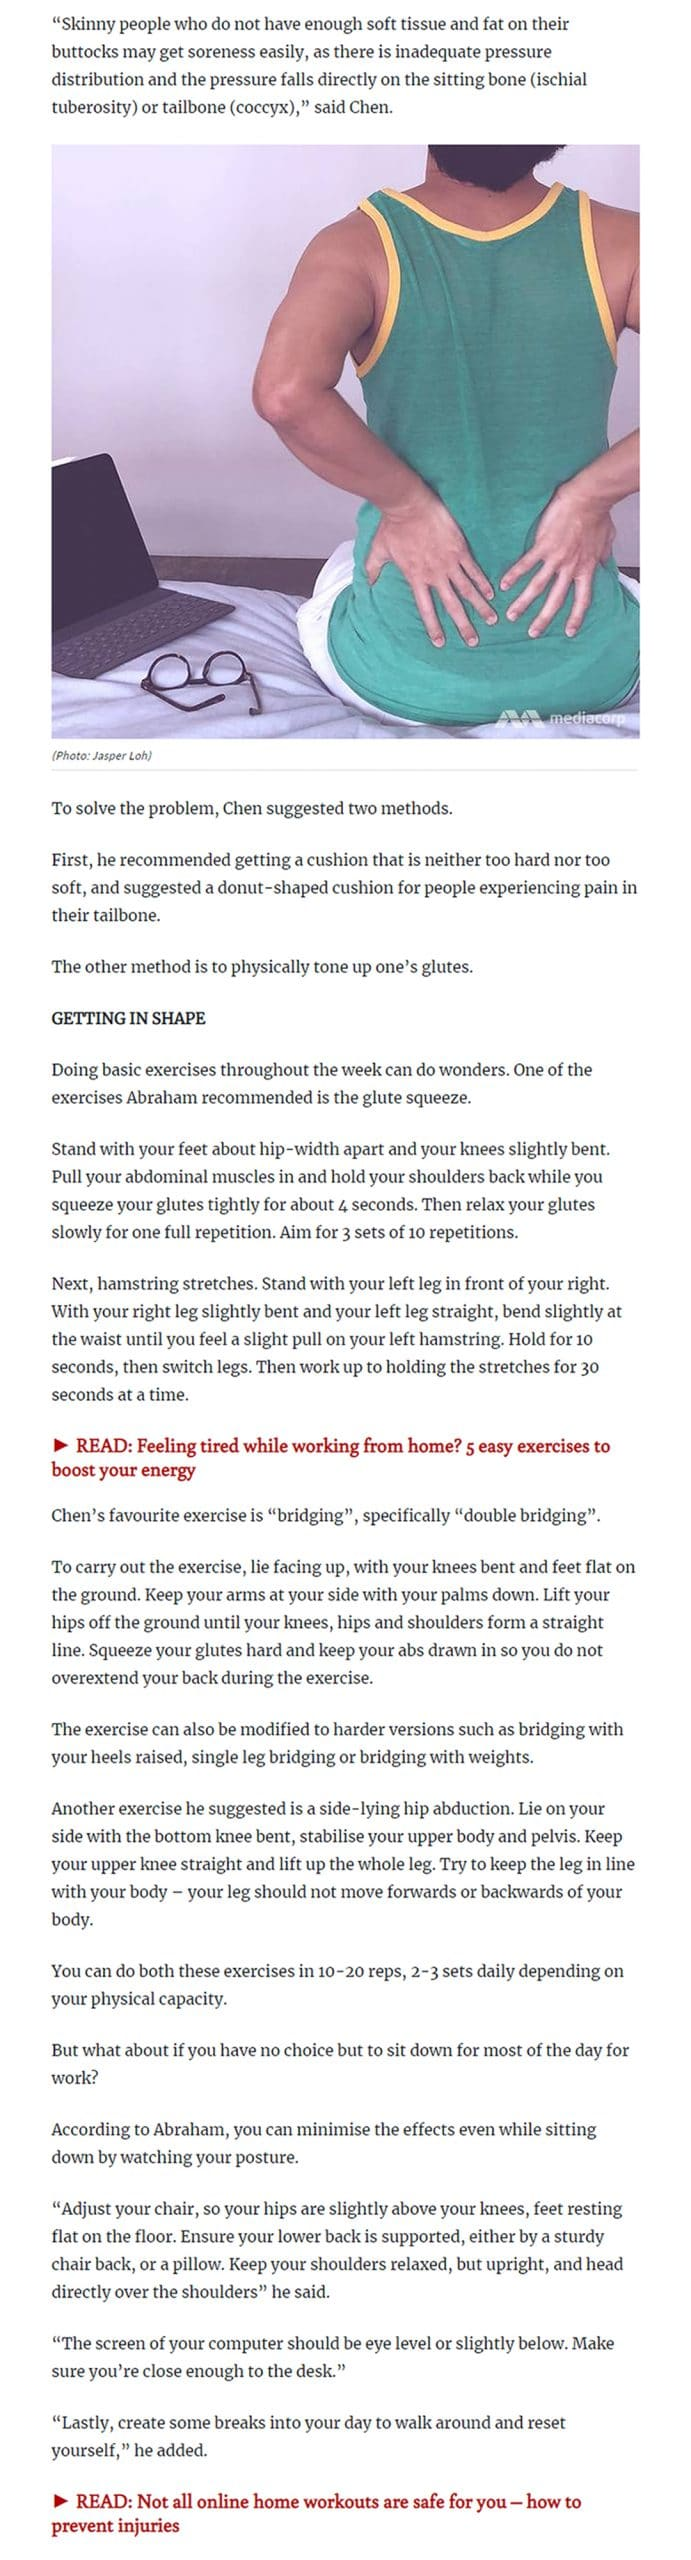 Five easy exercises to boost your energy